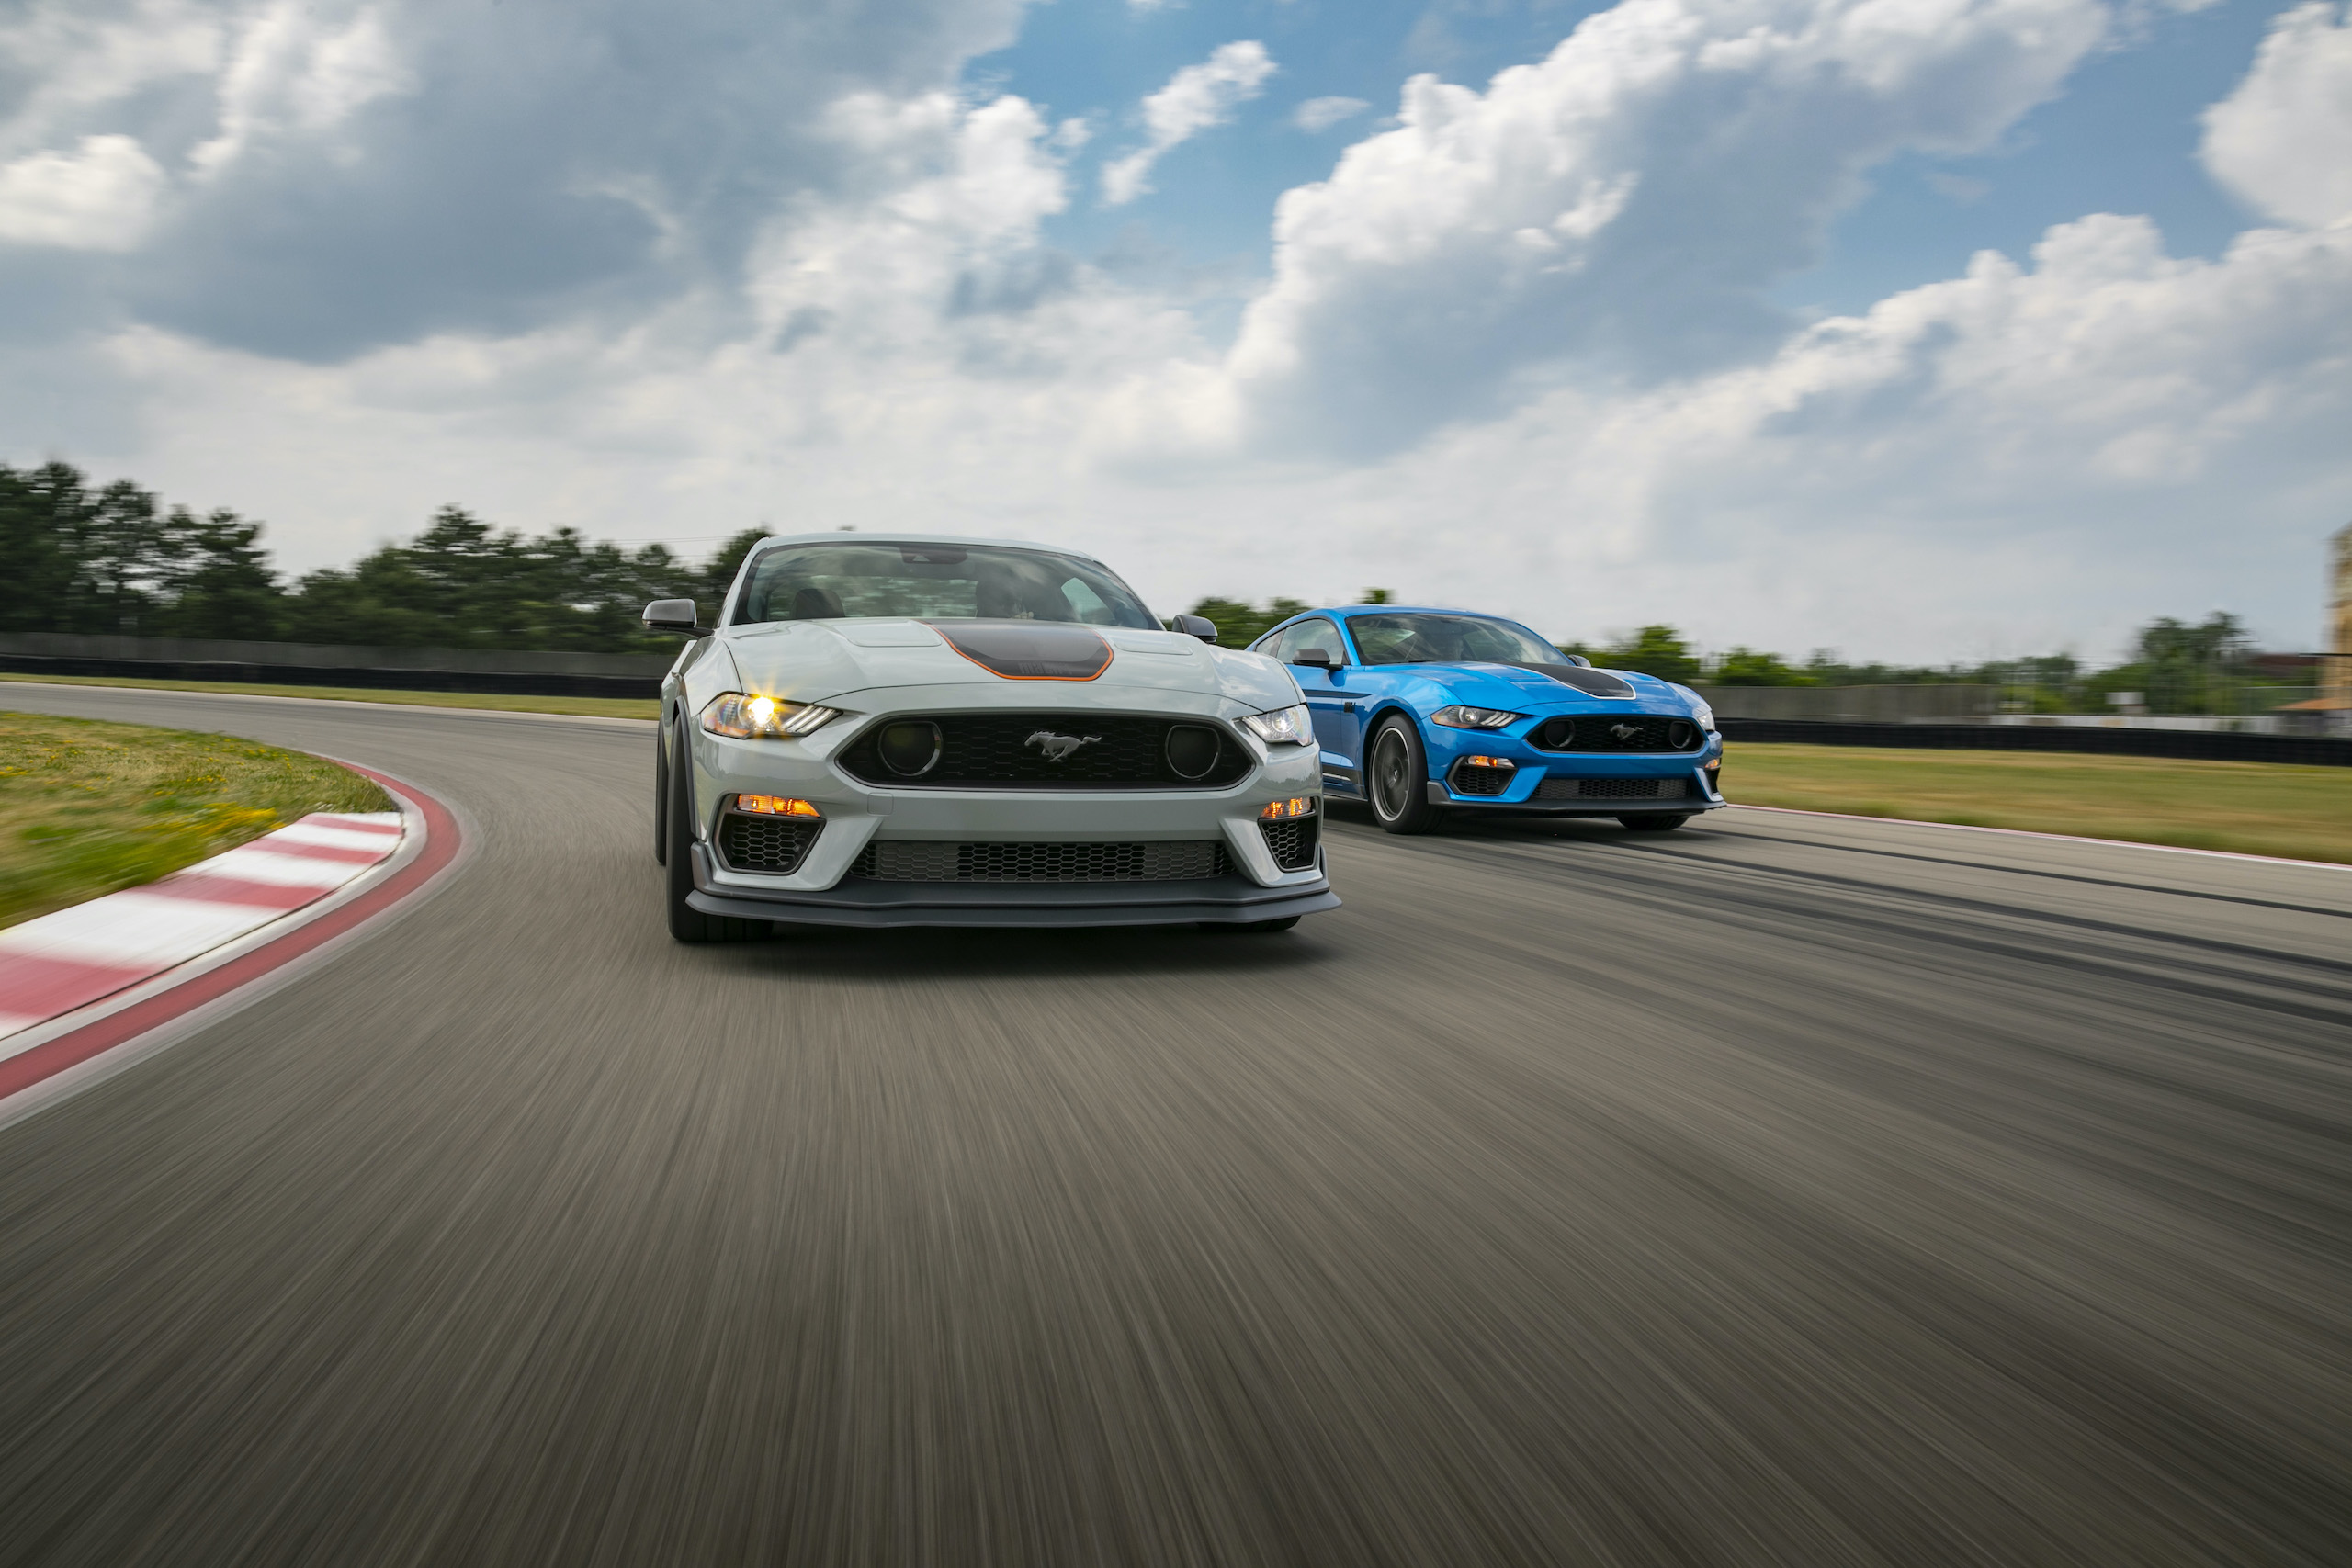 2021 Mustang Mach 1 white and blue on track action